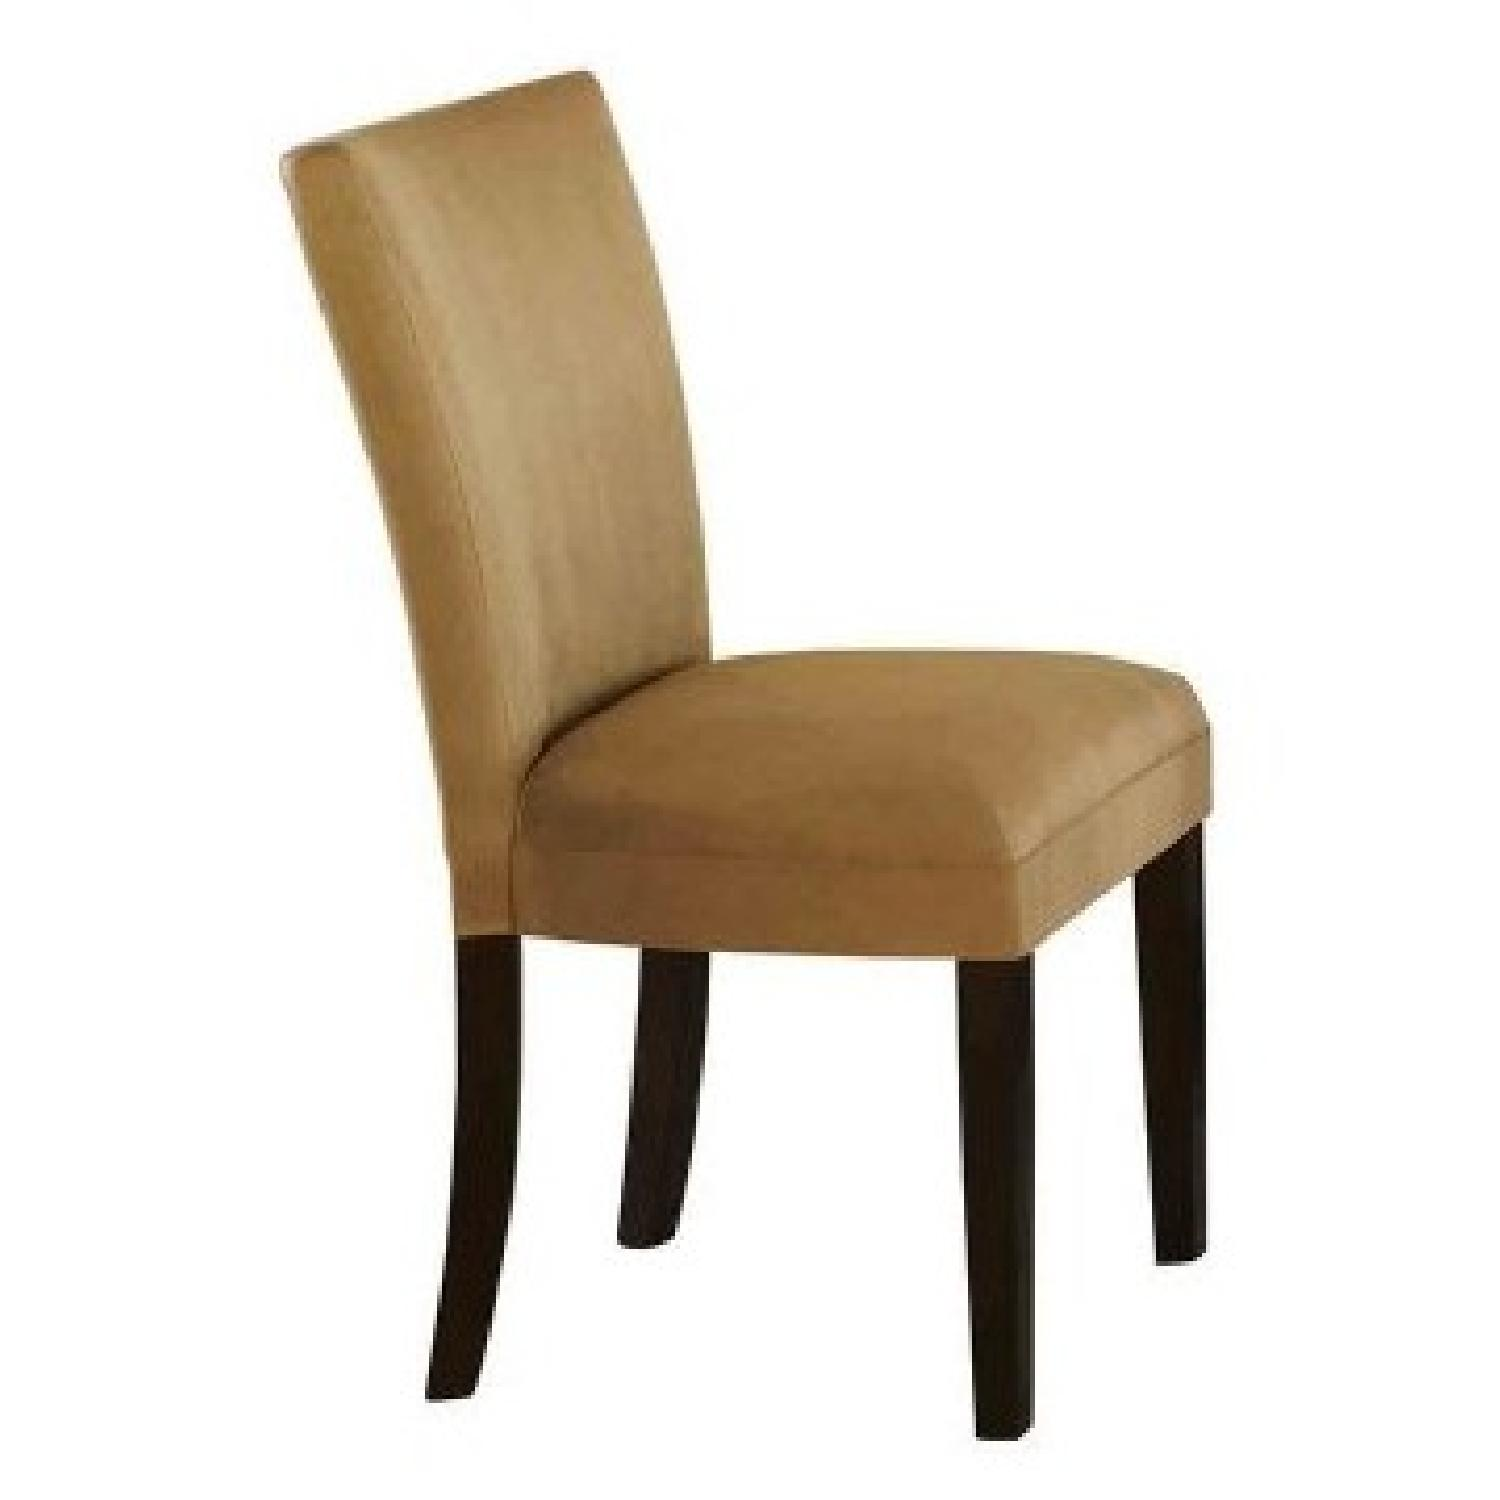 Dining Chair in Gold Ocre Microfiber Cushioned Upholstery